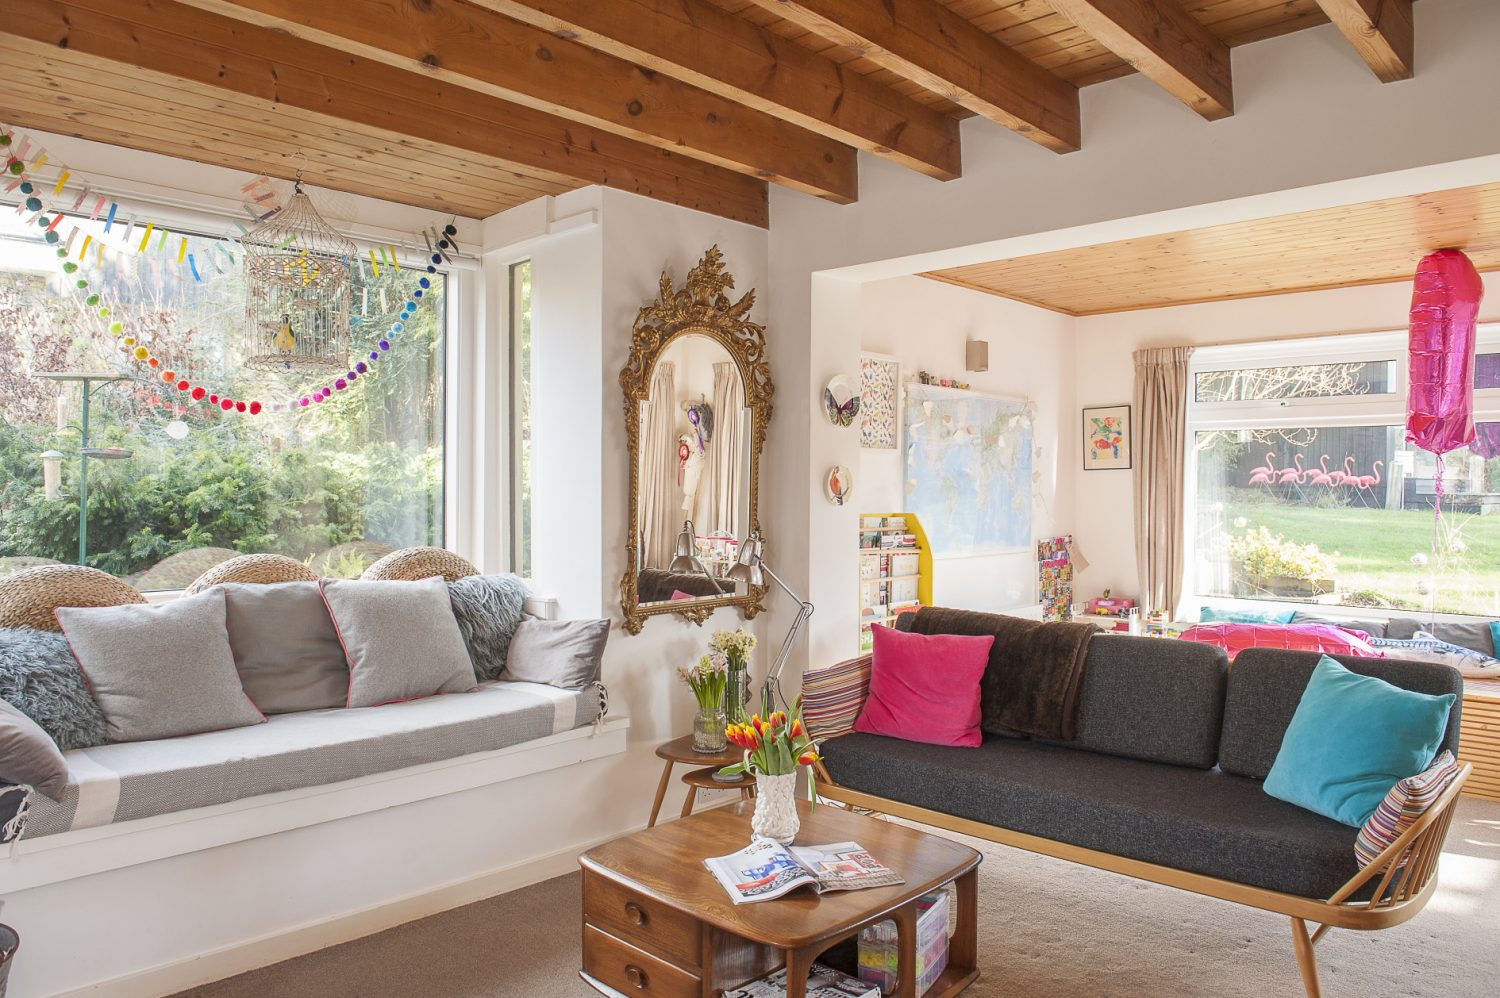 The drawing room looks out into the garden which surrounds it, complete with a flock of vibrant pink plastic flamingos